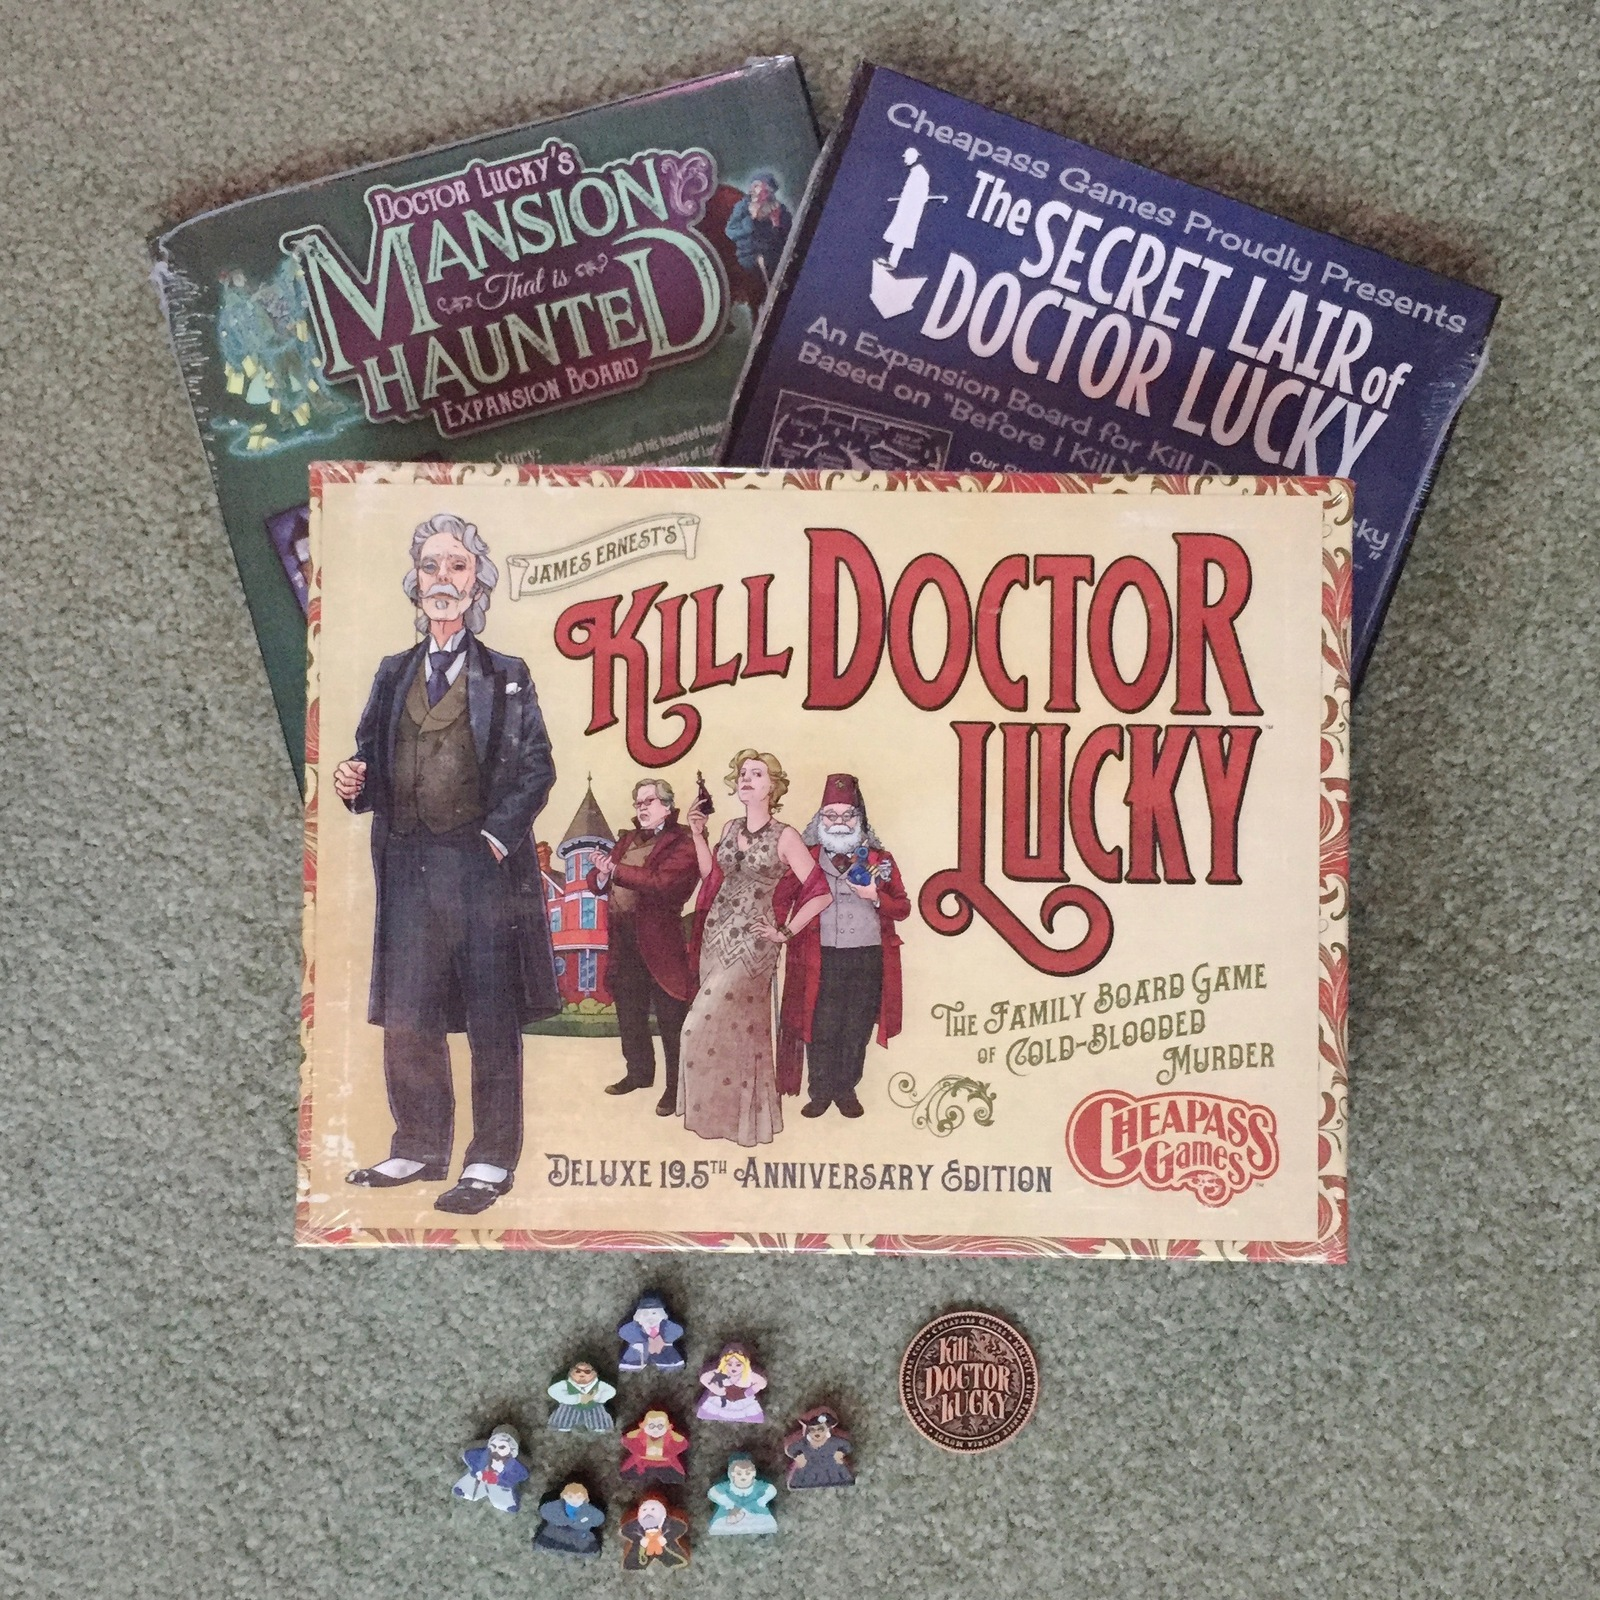 Maximum Kill Doctor Lucky Gift Pack - Limited Time